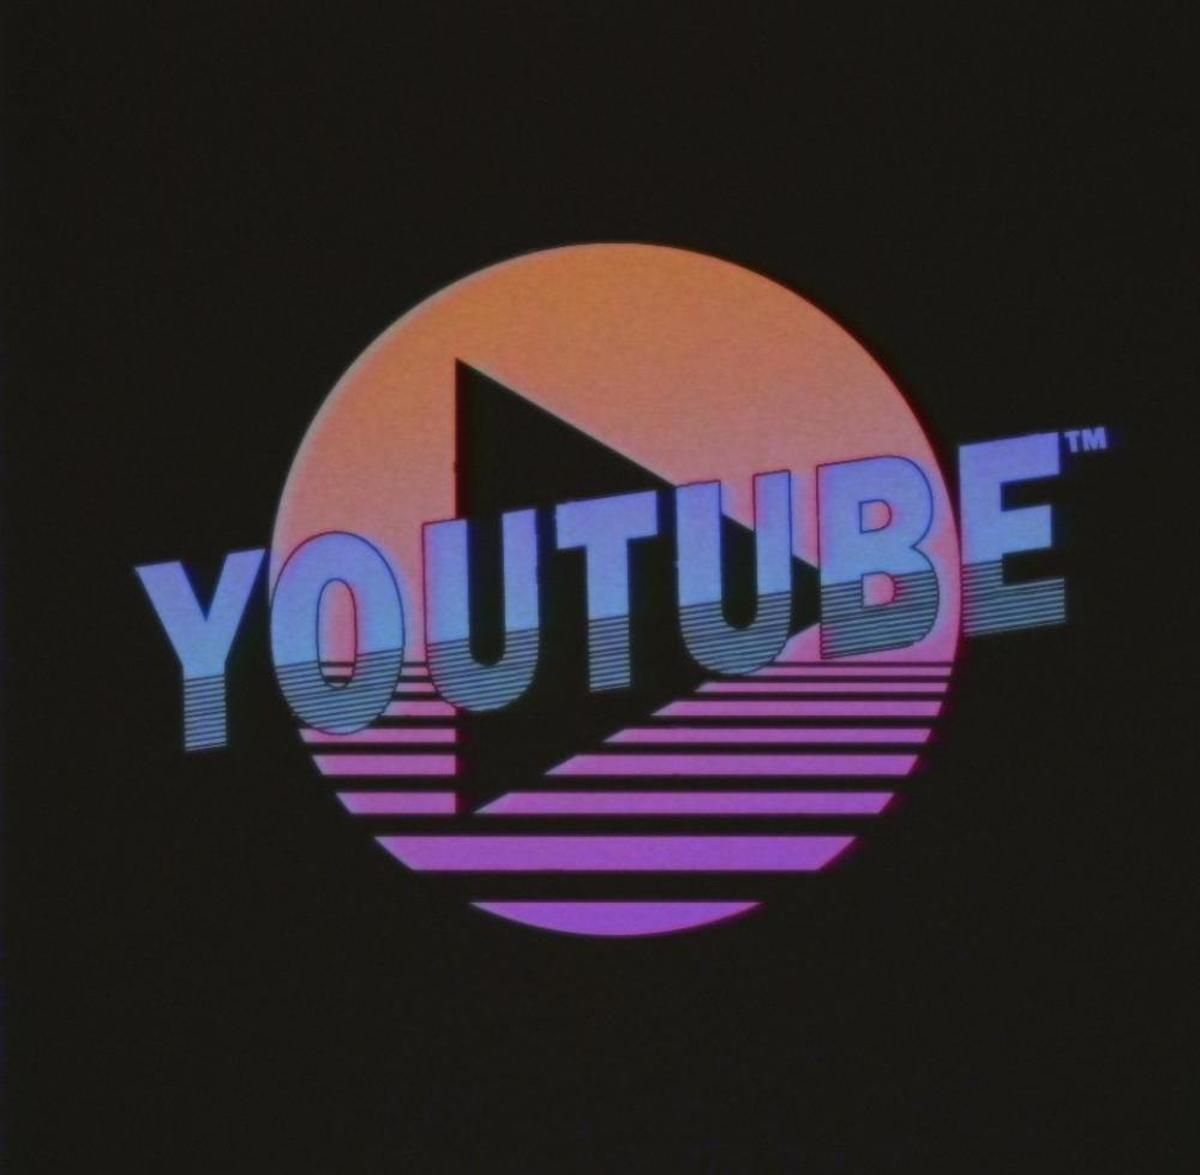 Famous Brand Logos Get Awesome Retro 80 S Style Redesigns Retro Logos Internet Logo Logo Redesign